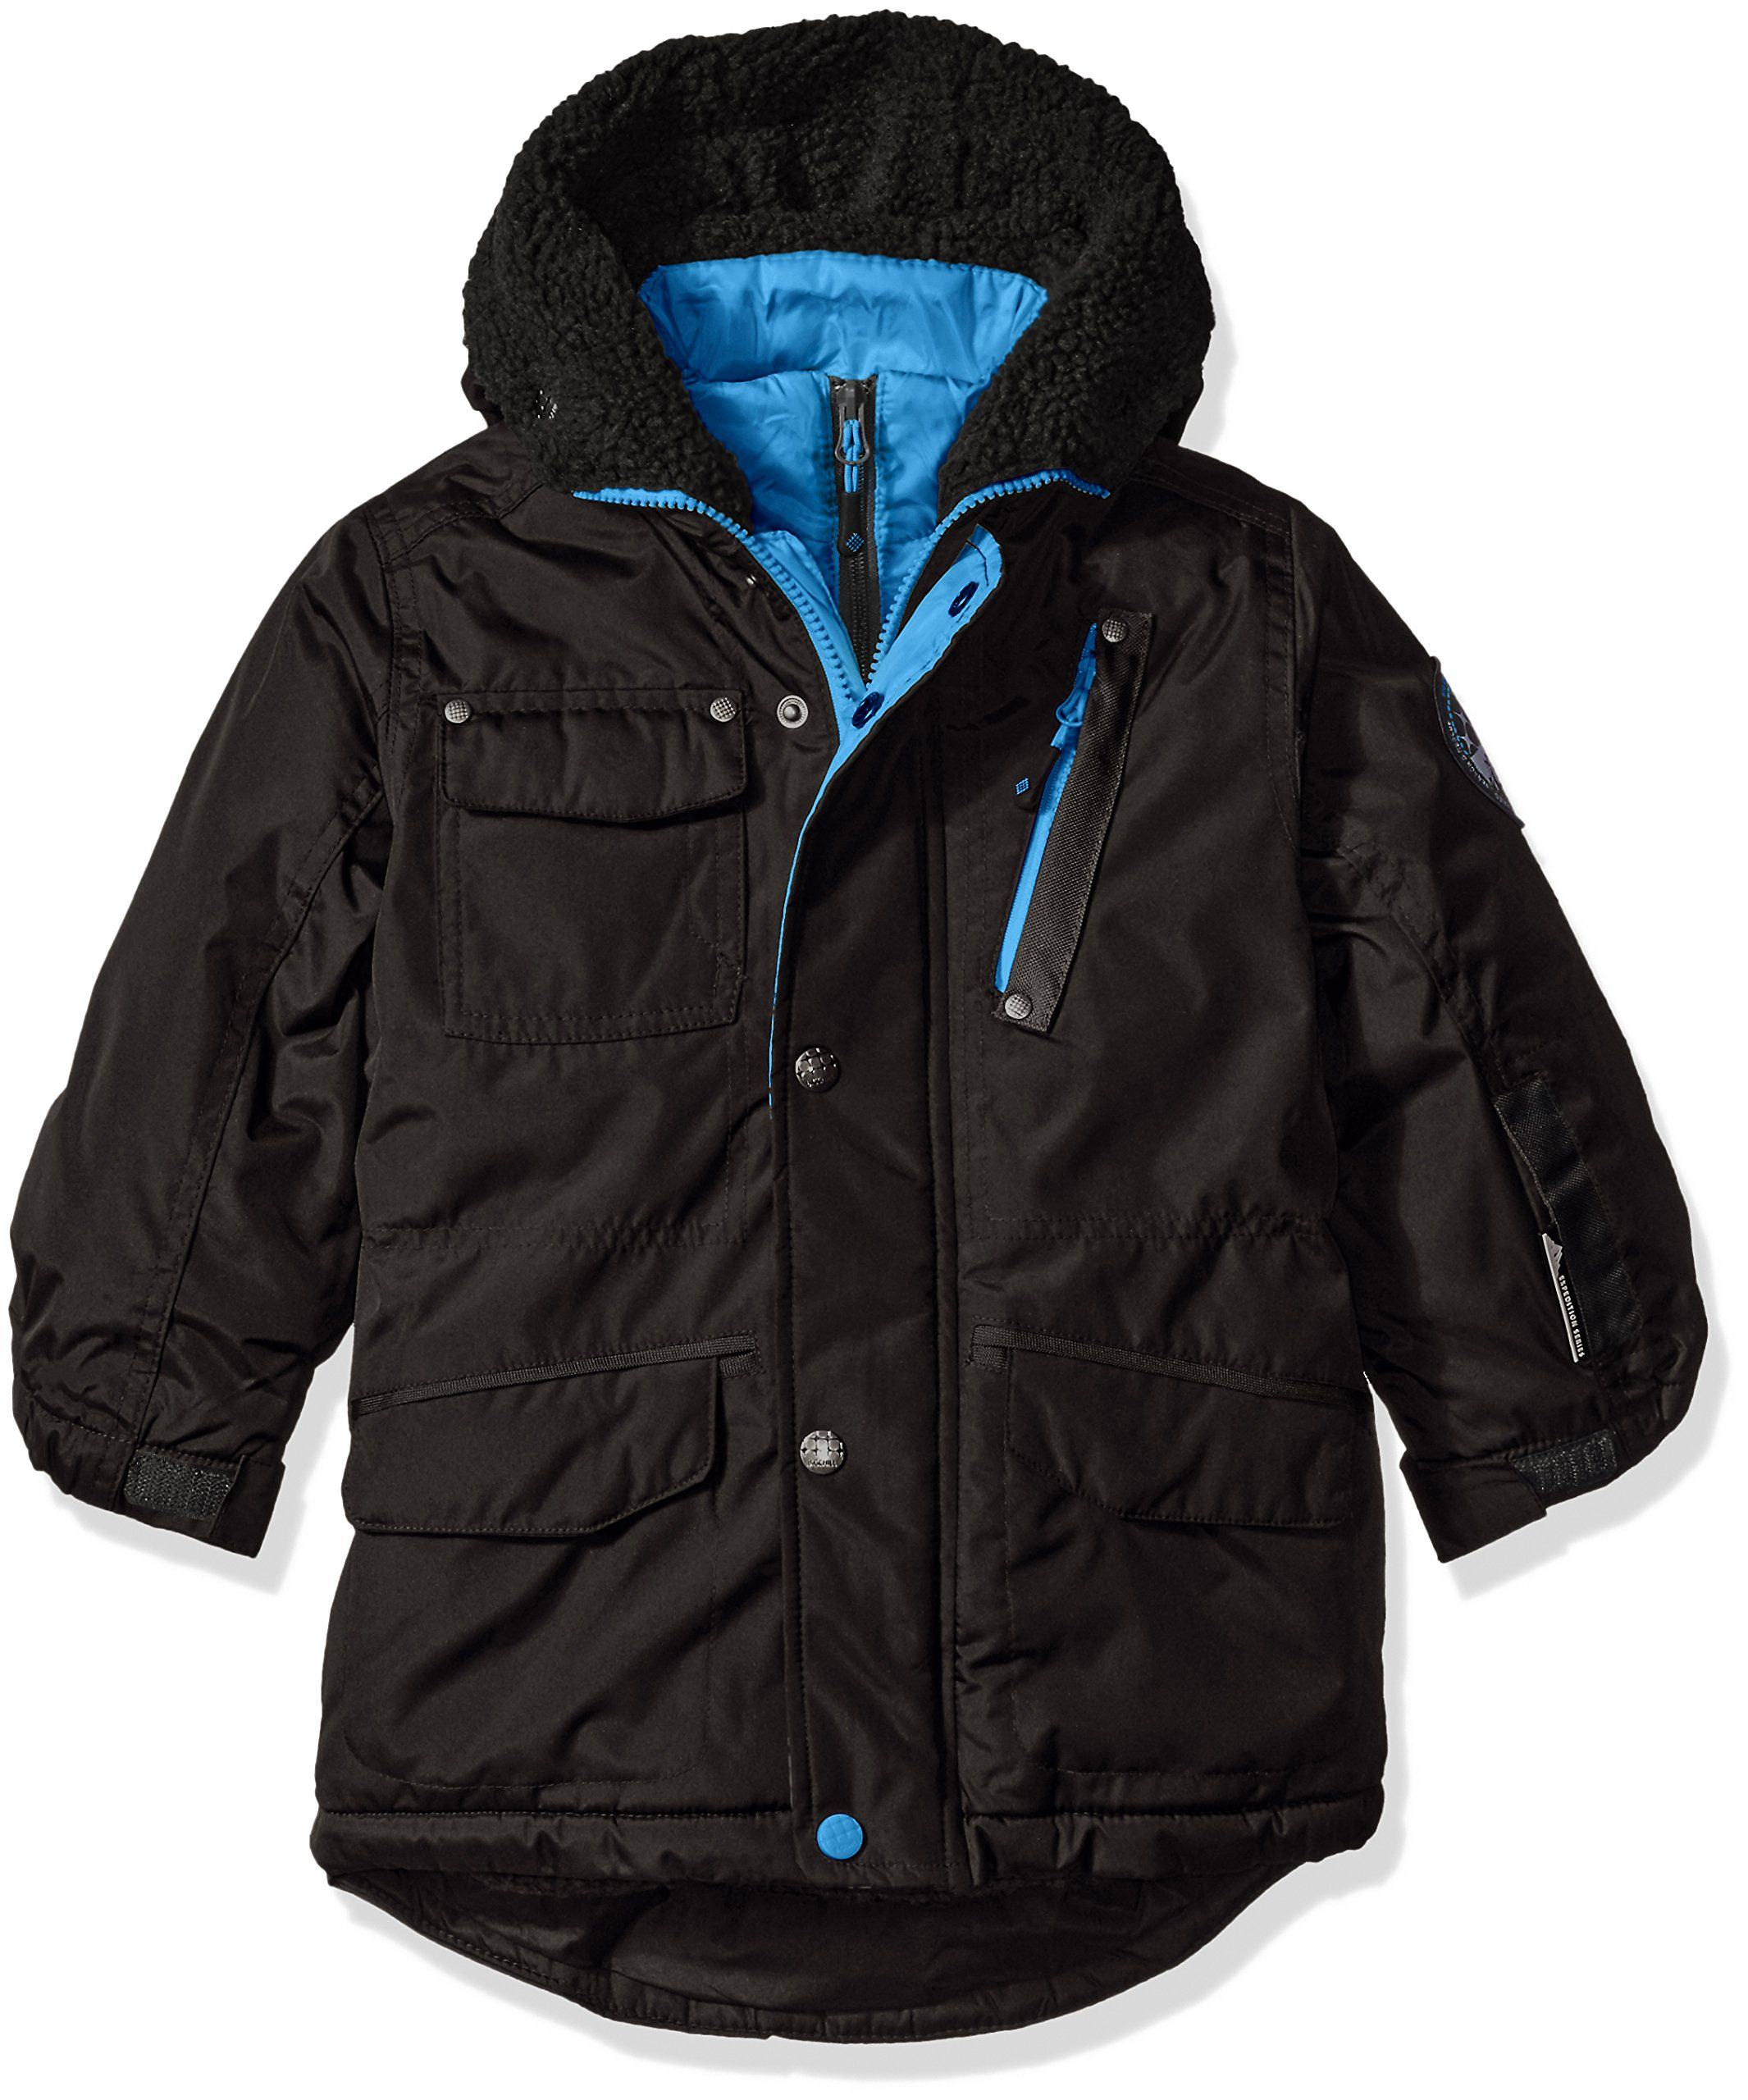 Big Chill Big Boys Expedition Jacket With Vestee Black 10 12 Berber Lined Body And Hood 4 Front Pockets Girls Jacket Jackets Outerwear Fashion [ 2560 x 2131 Pixel ]